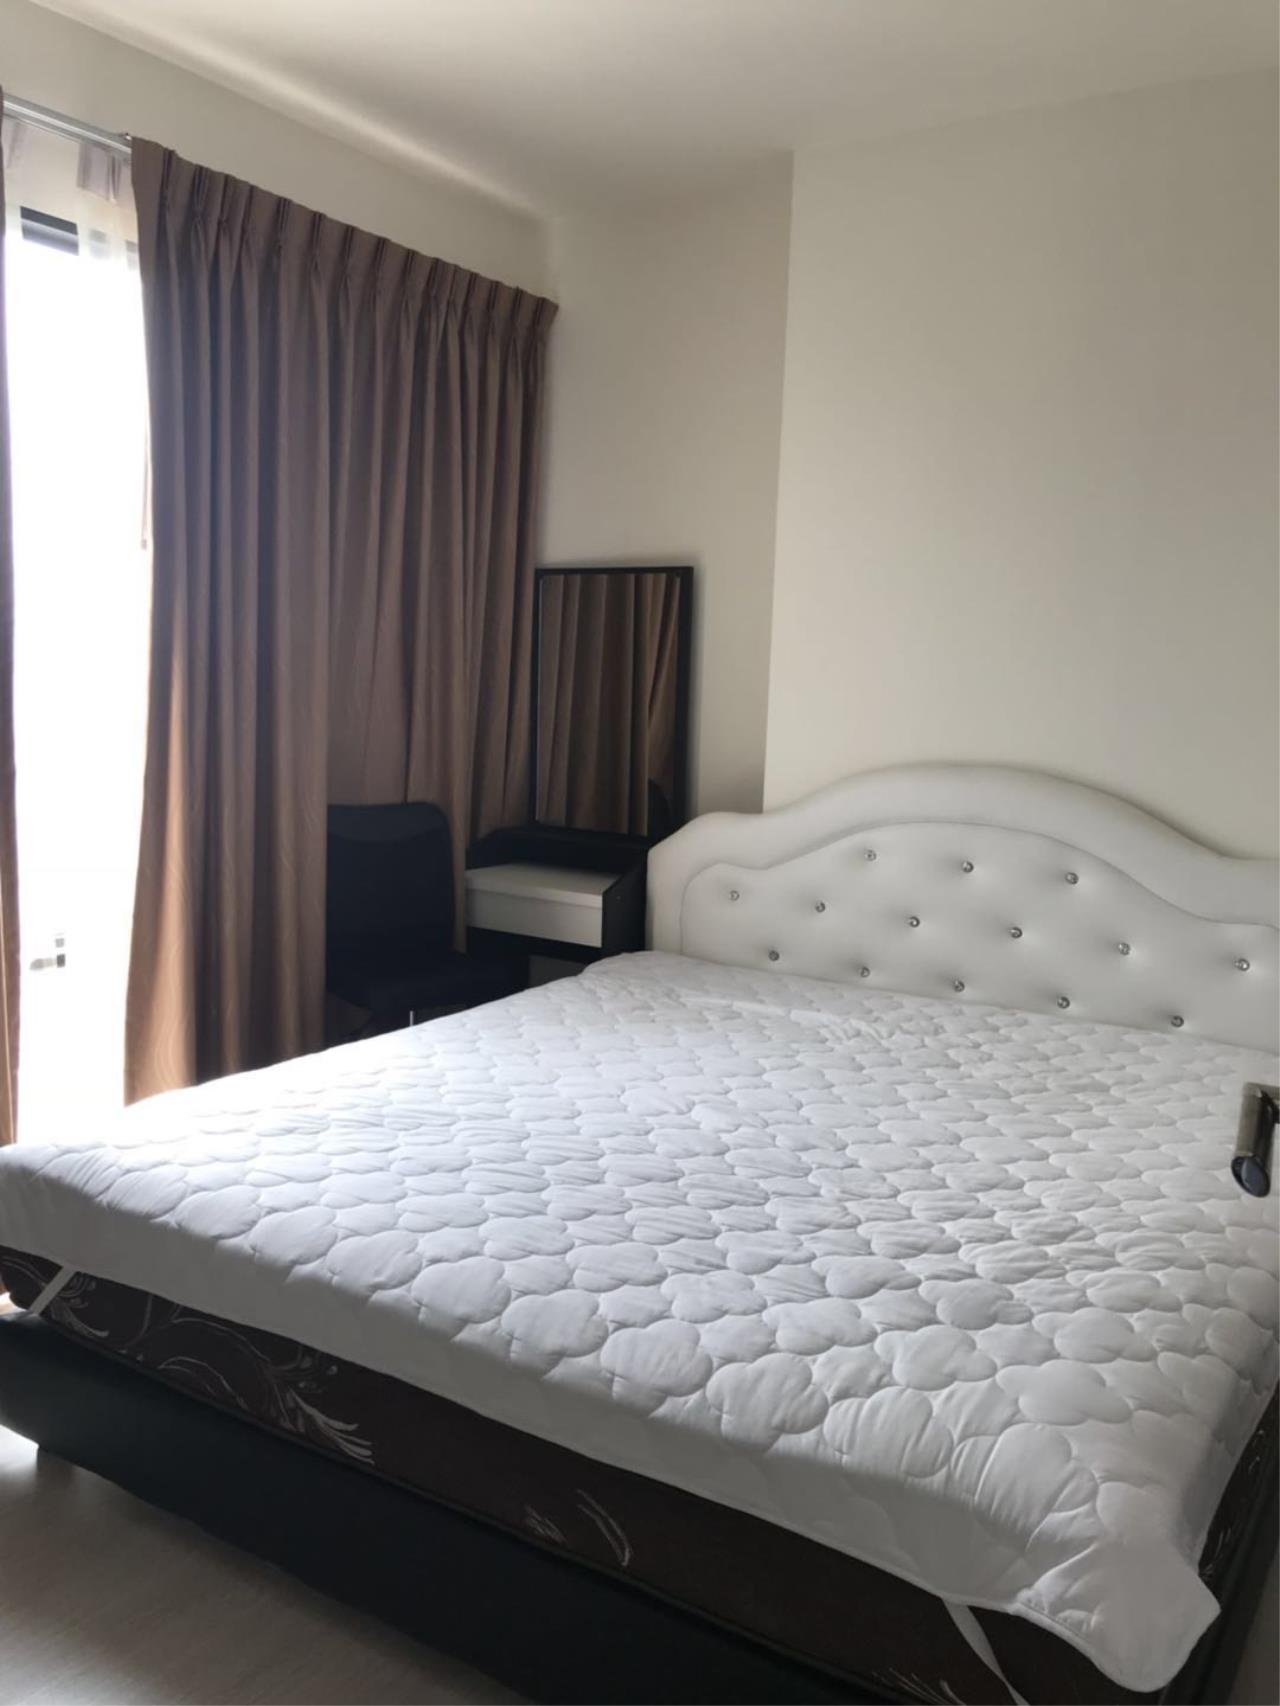 RE/MAX All Star Realty Agency's Rhythm Asoke beautiful rooms for sale/rent. 3